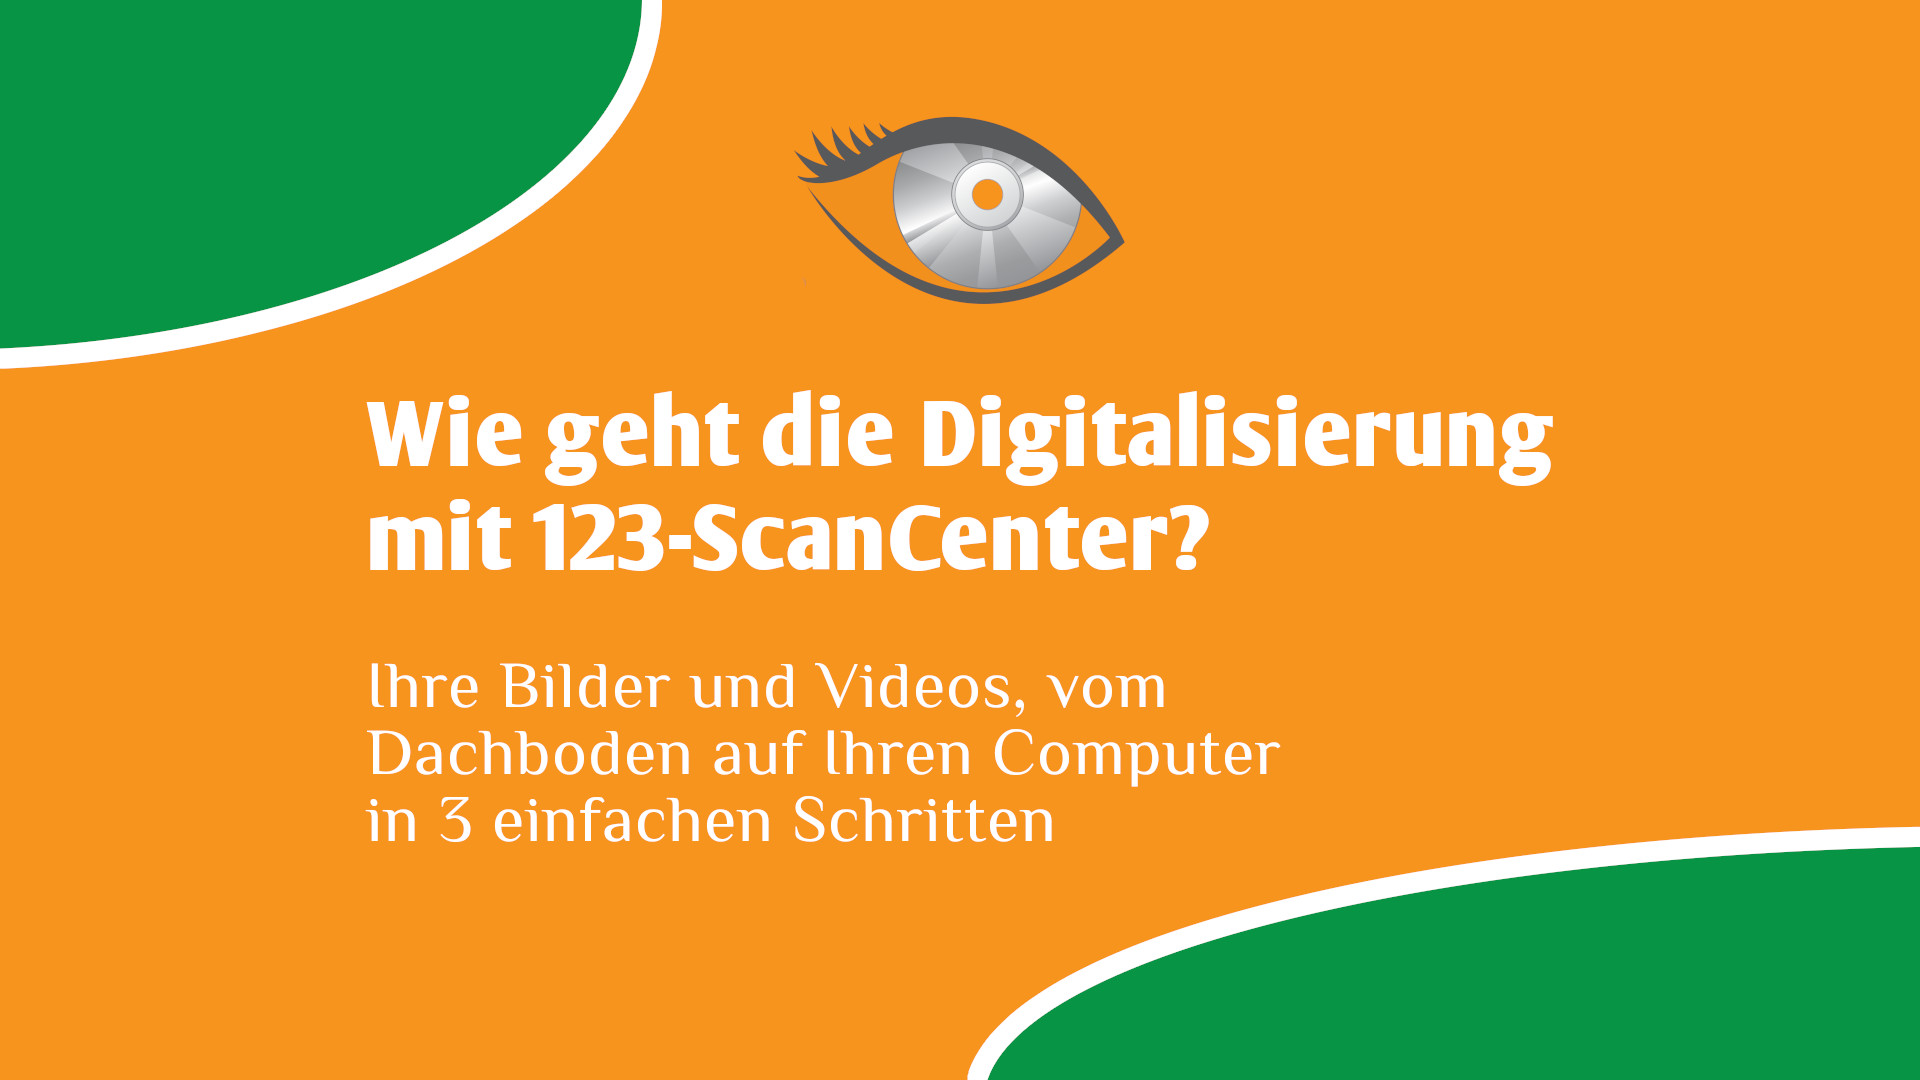 Video-Thumbnail » Digitalisierung Dias und Videos in Kelkheim » 123-Scancenter